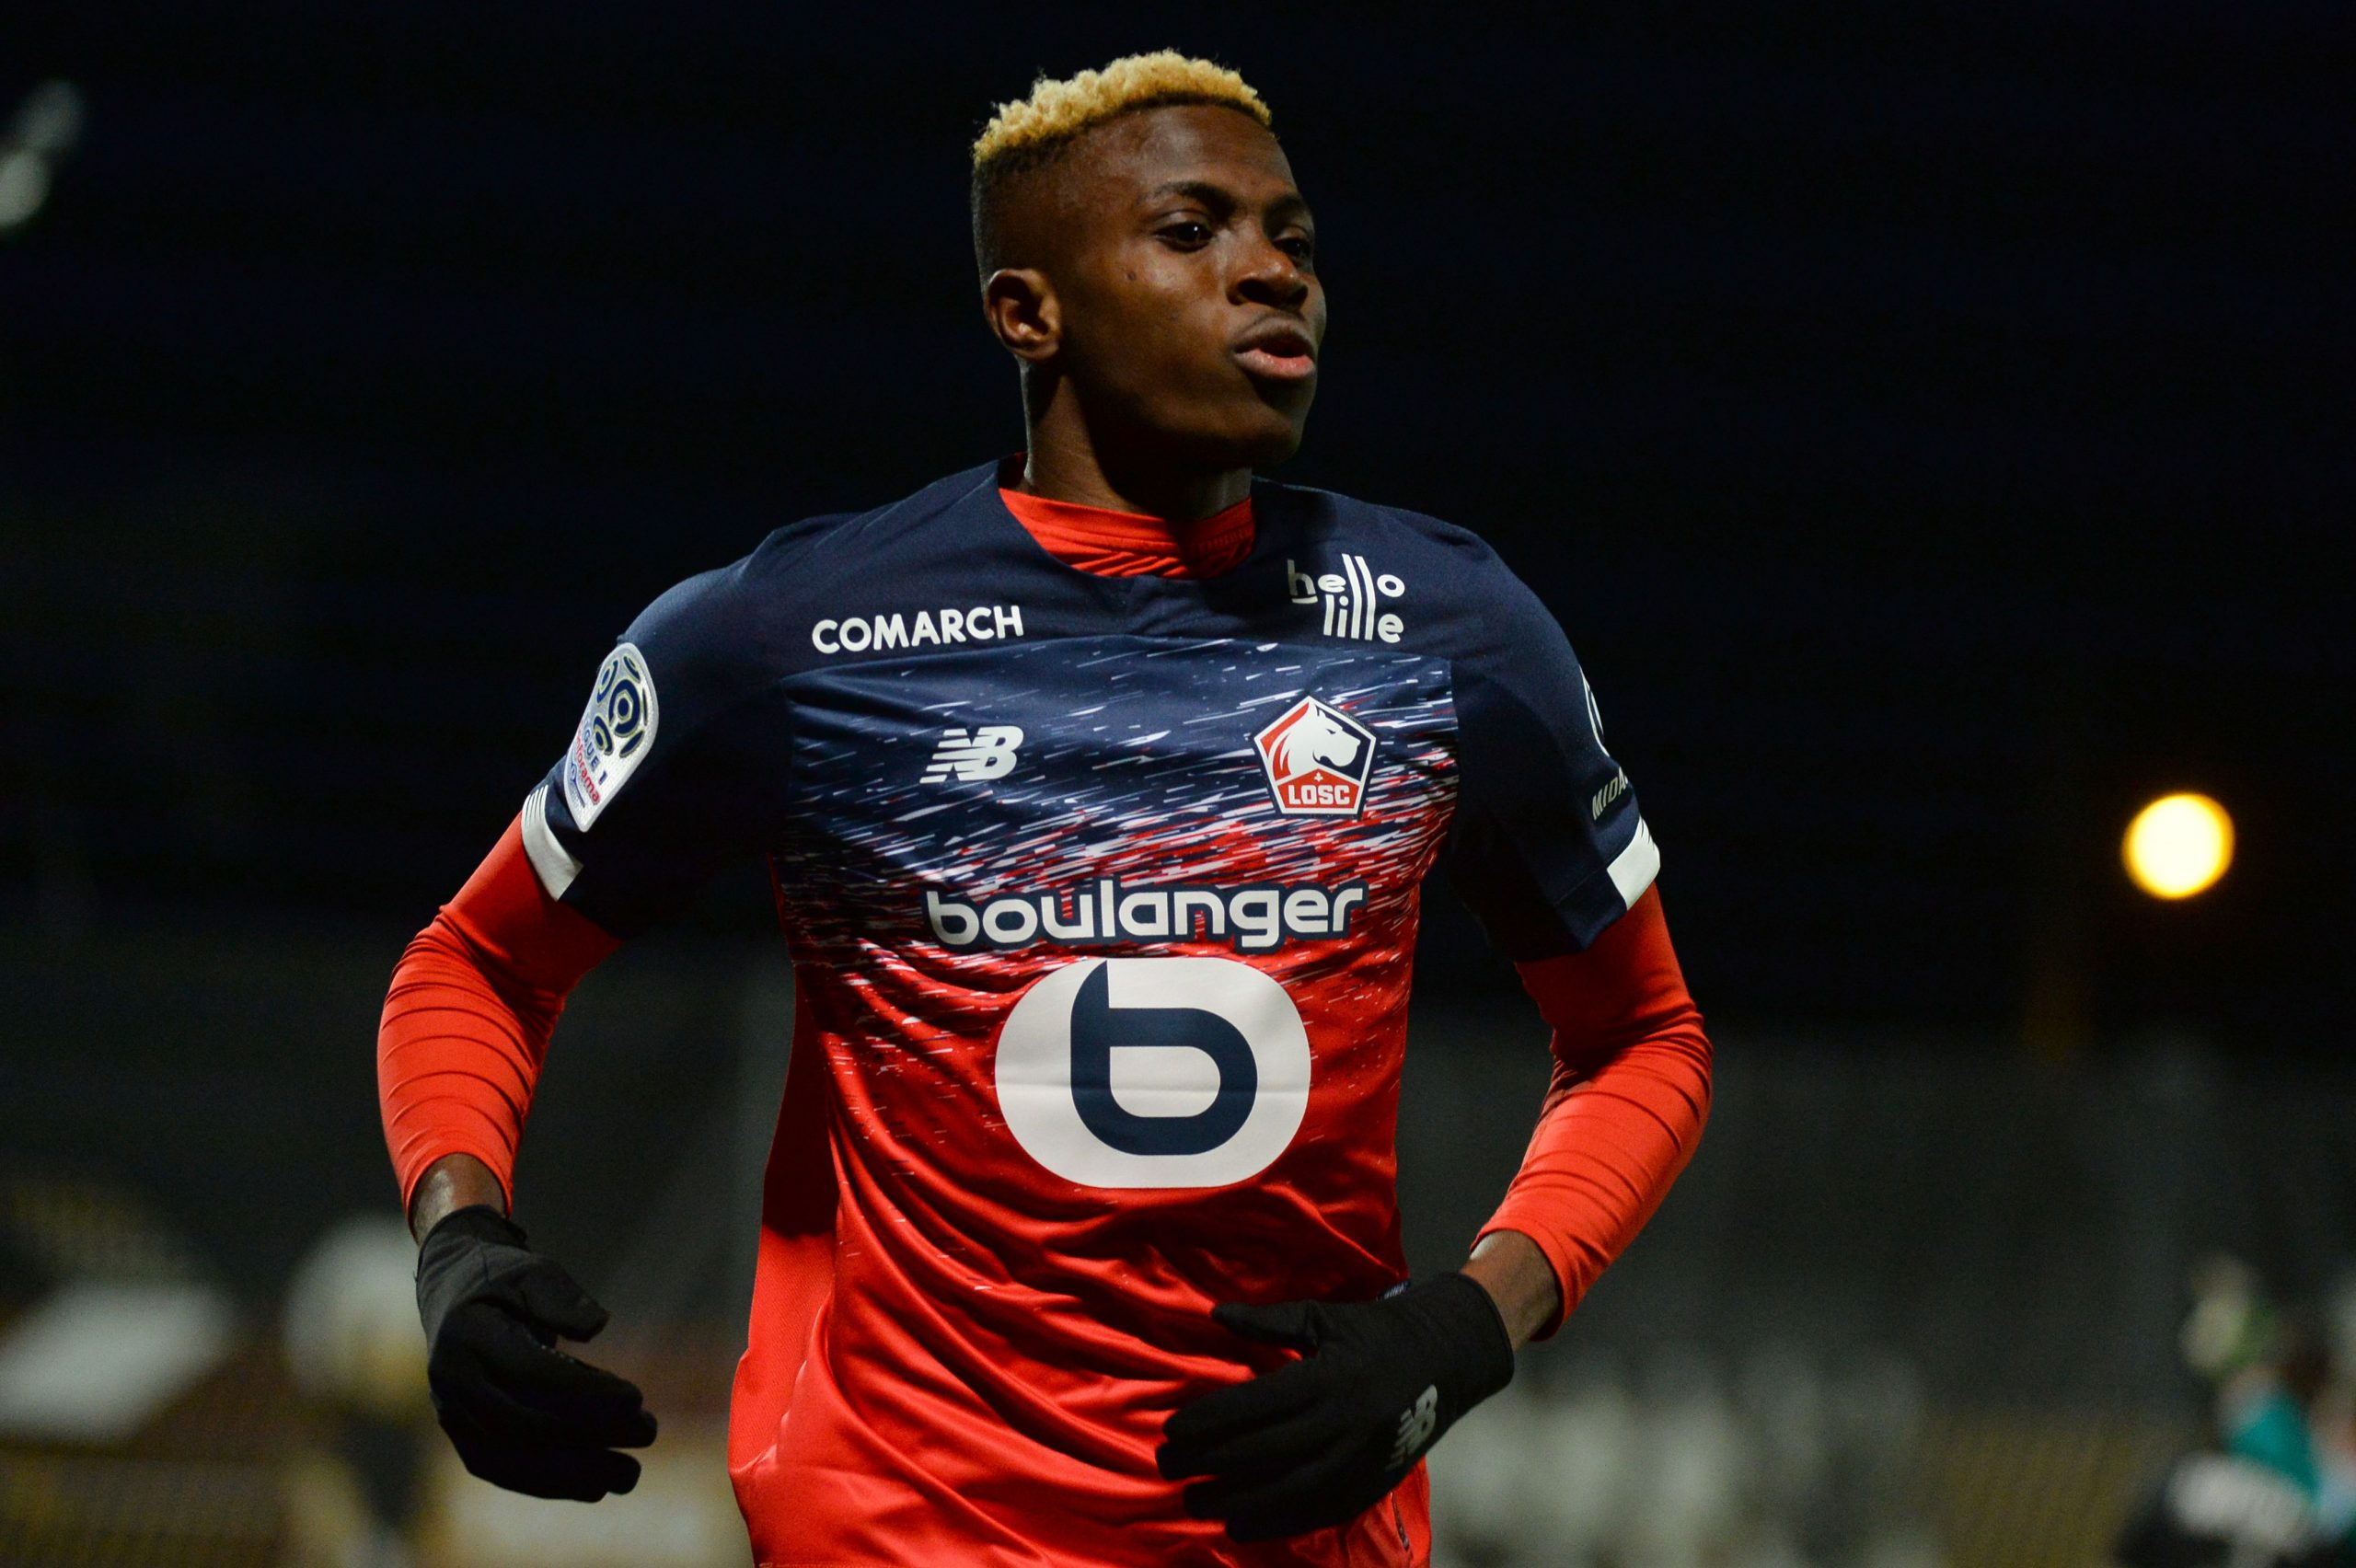 Tottenham Hotspur target Victor Osimhen has denied news that he has reached an agreement with Napoli